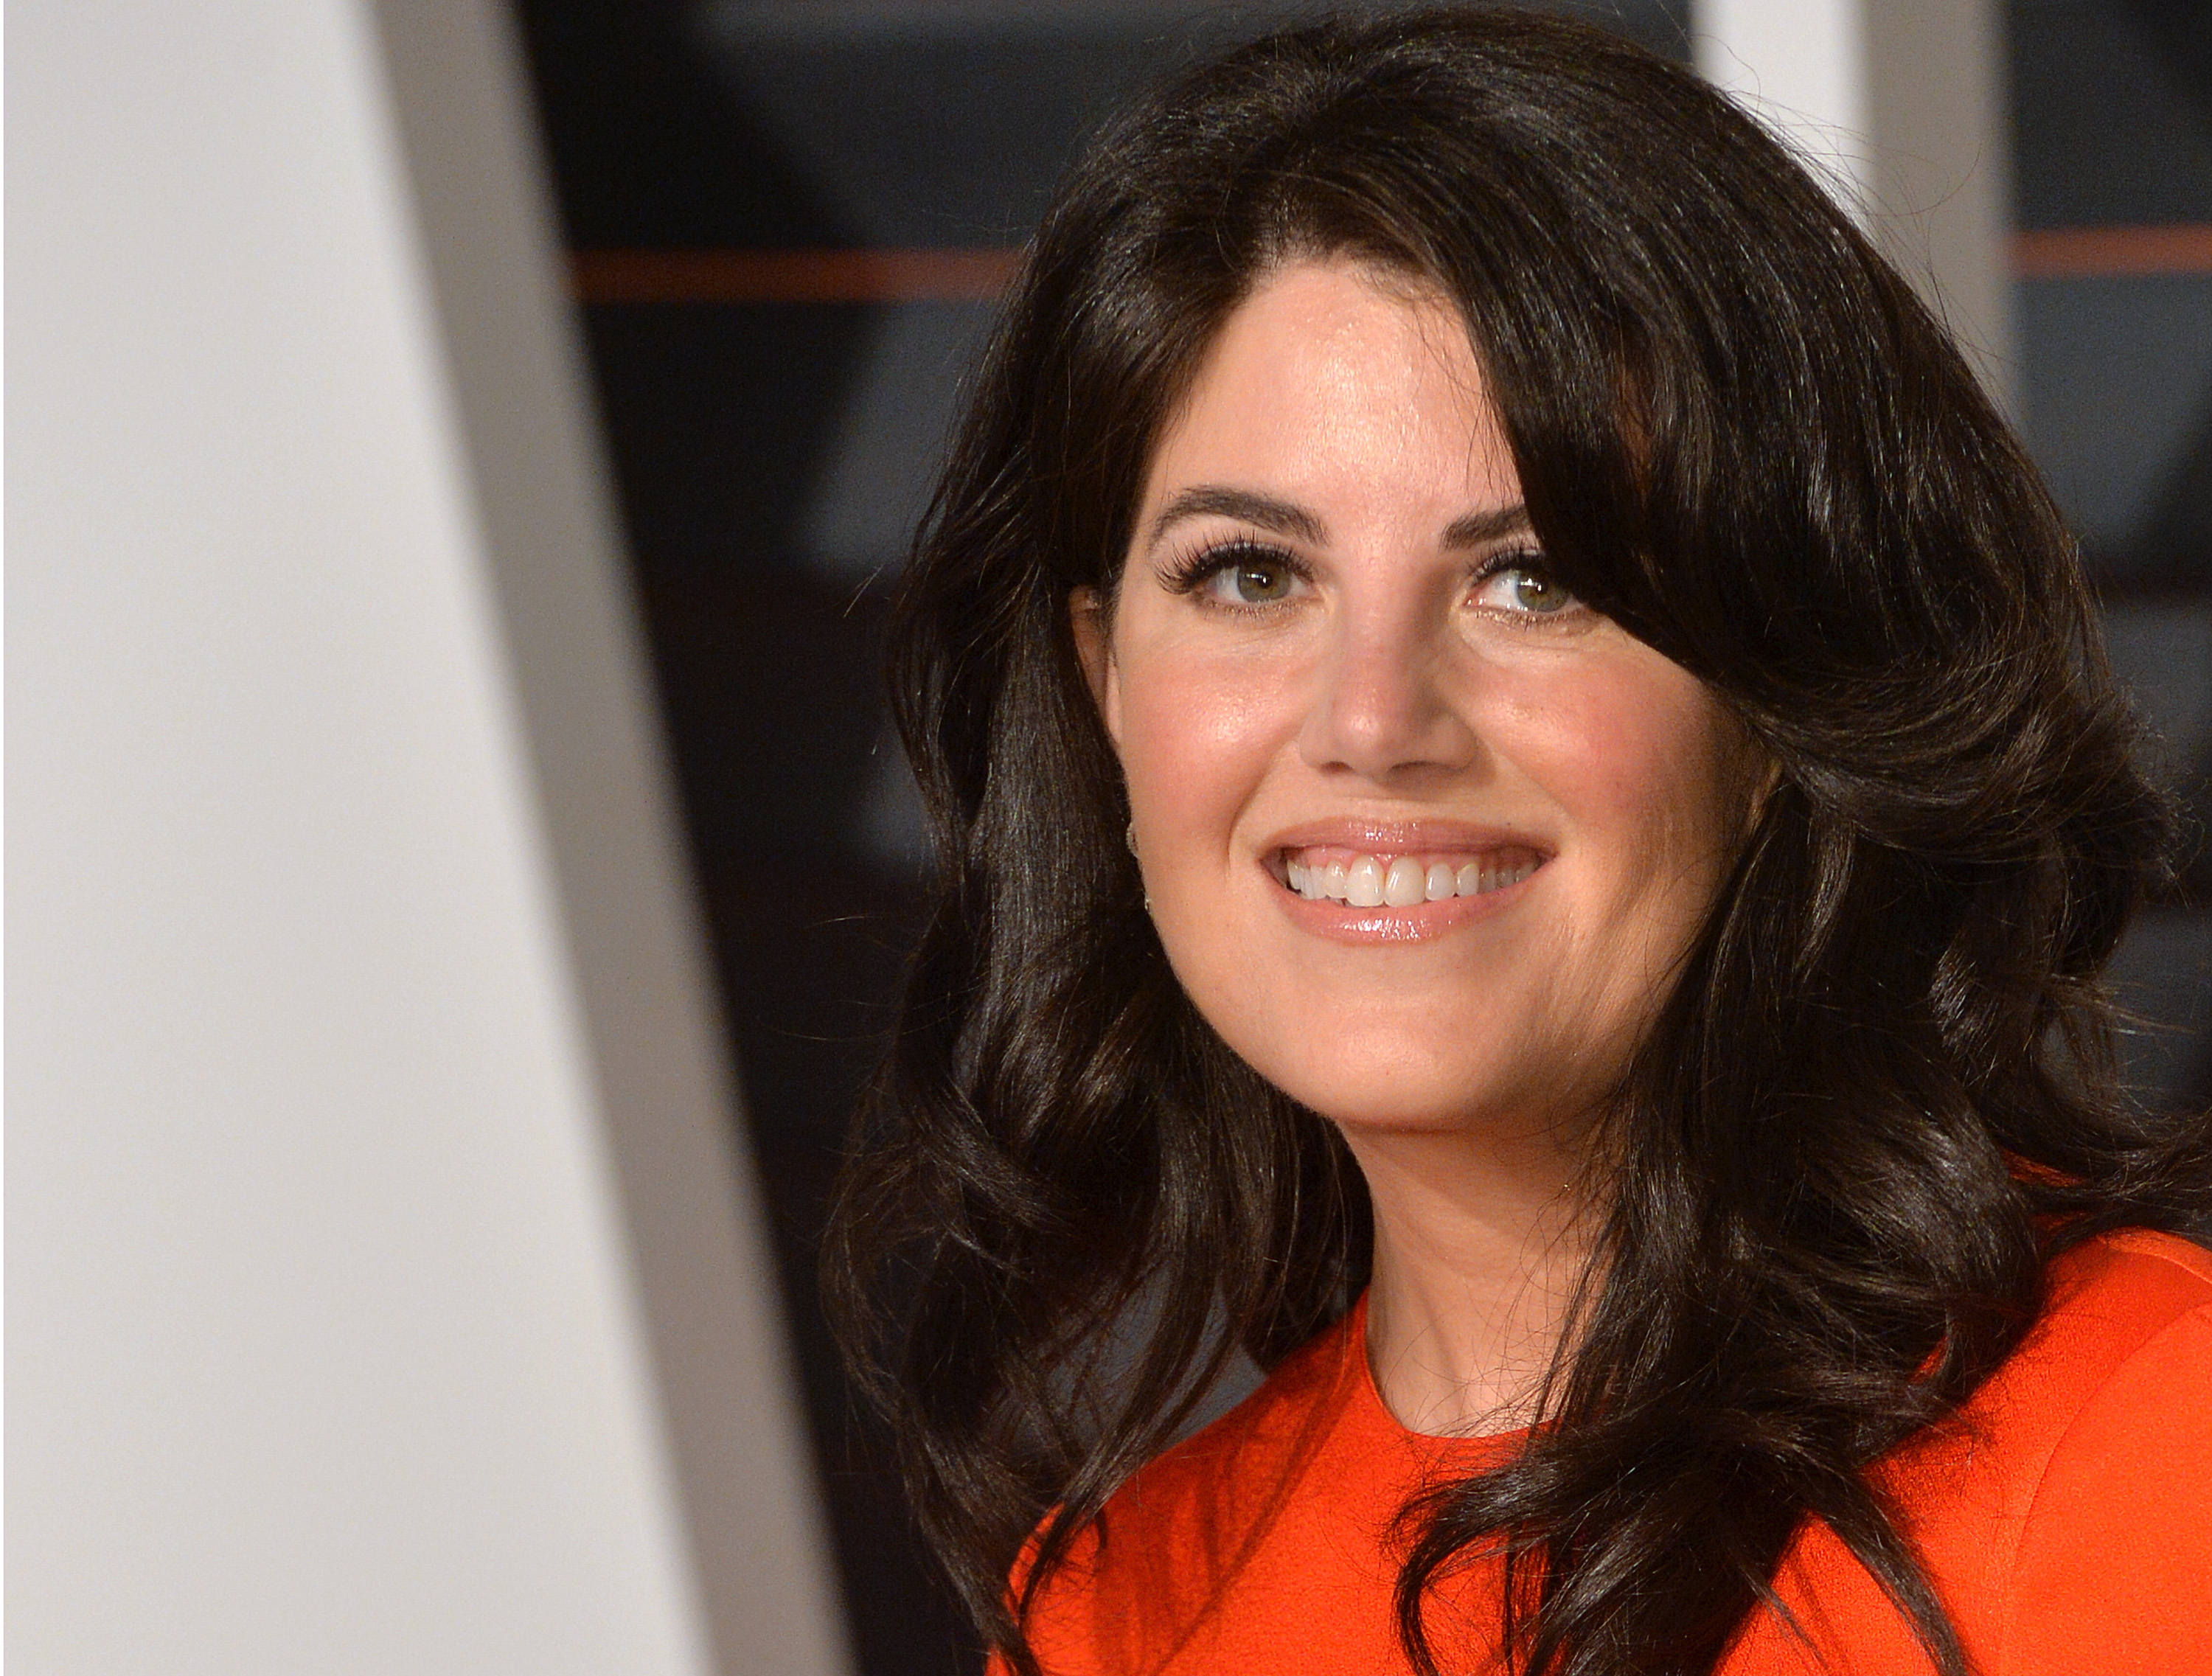 Monica Lewinsky arrives at the 2015 Vanity Fair Oscar Party Hosted By Graydon Carter at Wallis Annenberg Center for the Performing Arts on February 22, 2015 in Beverly Hills, California.  (Anthony Harvey--Getty Images)